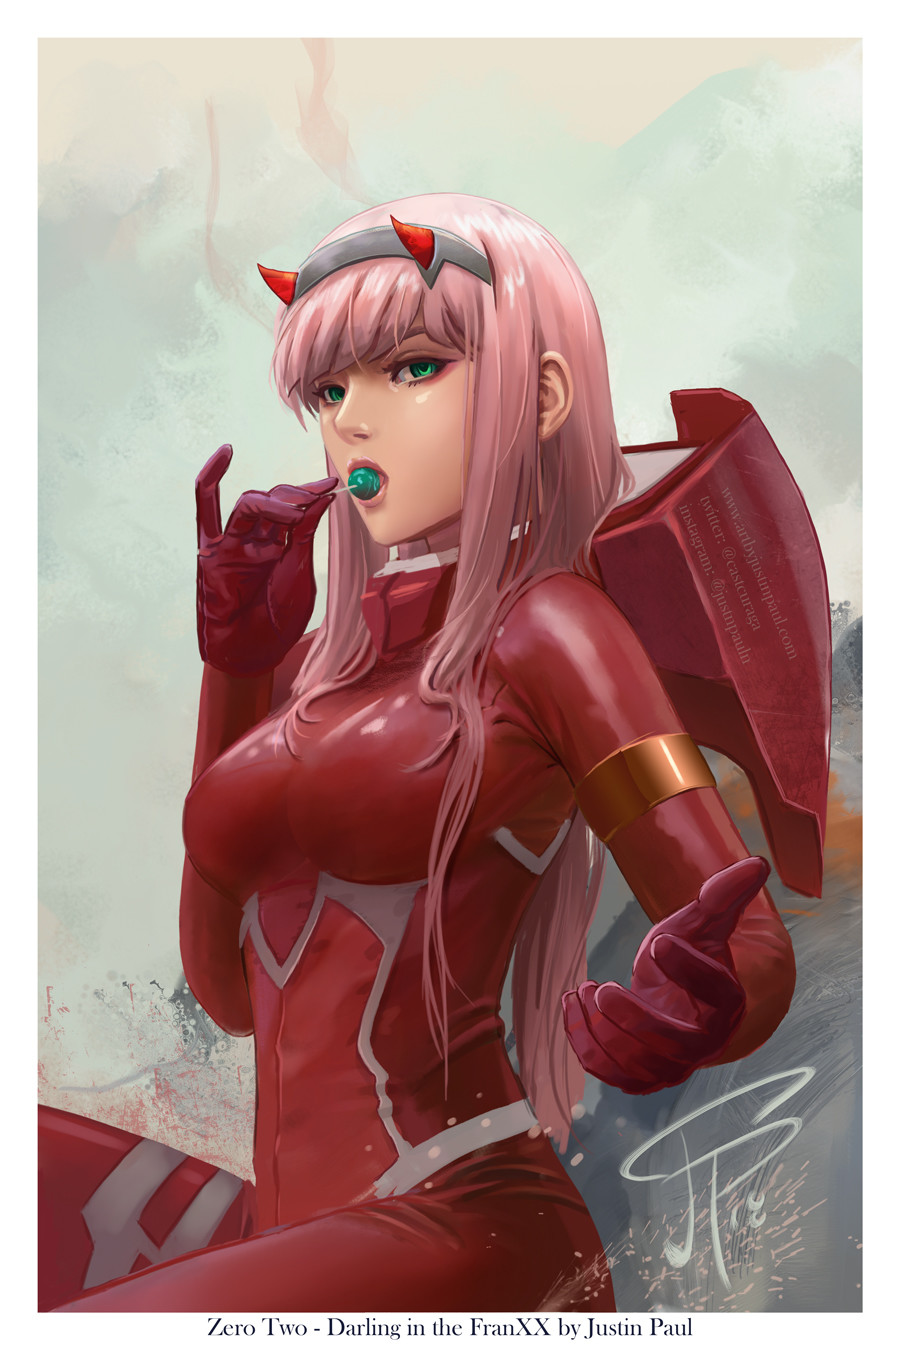 Zero Two - Darling in the FranXX